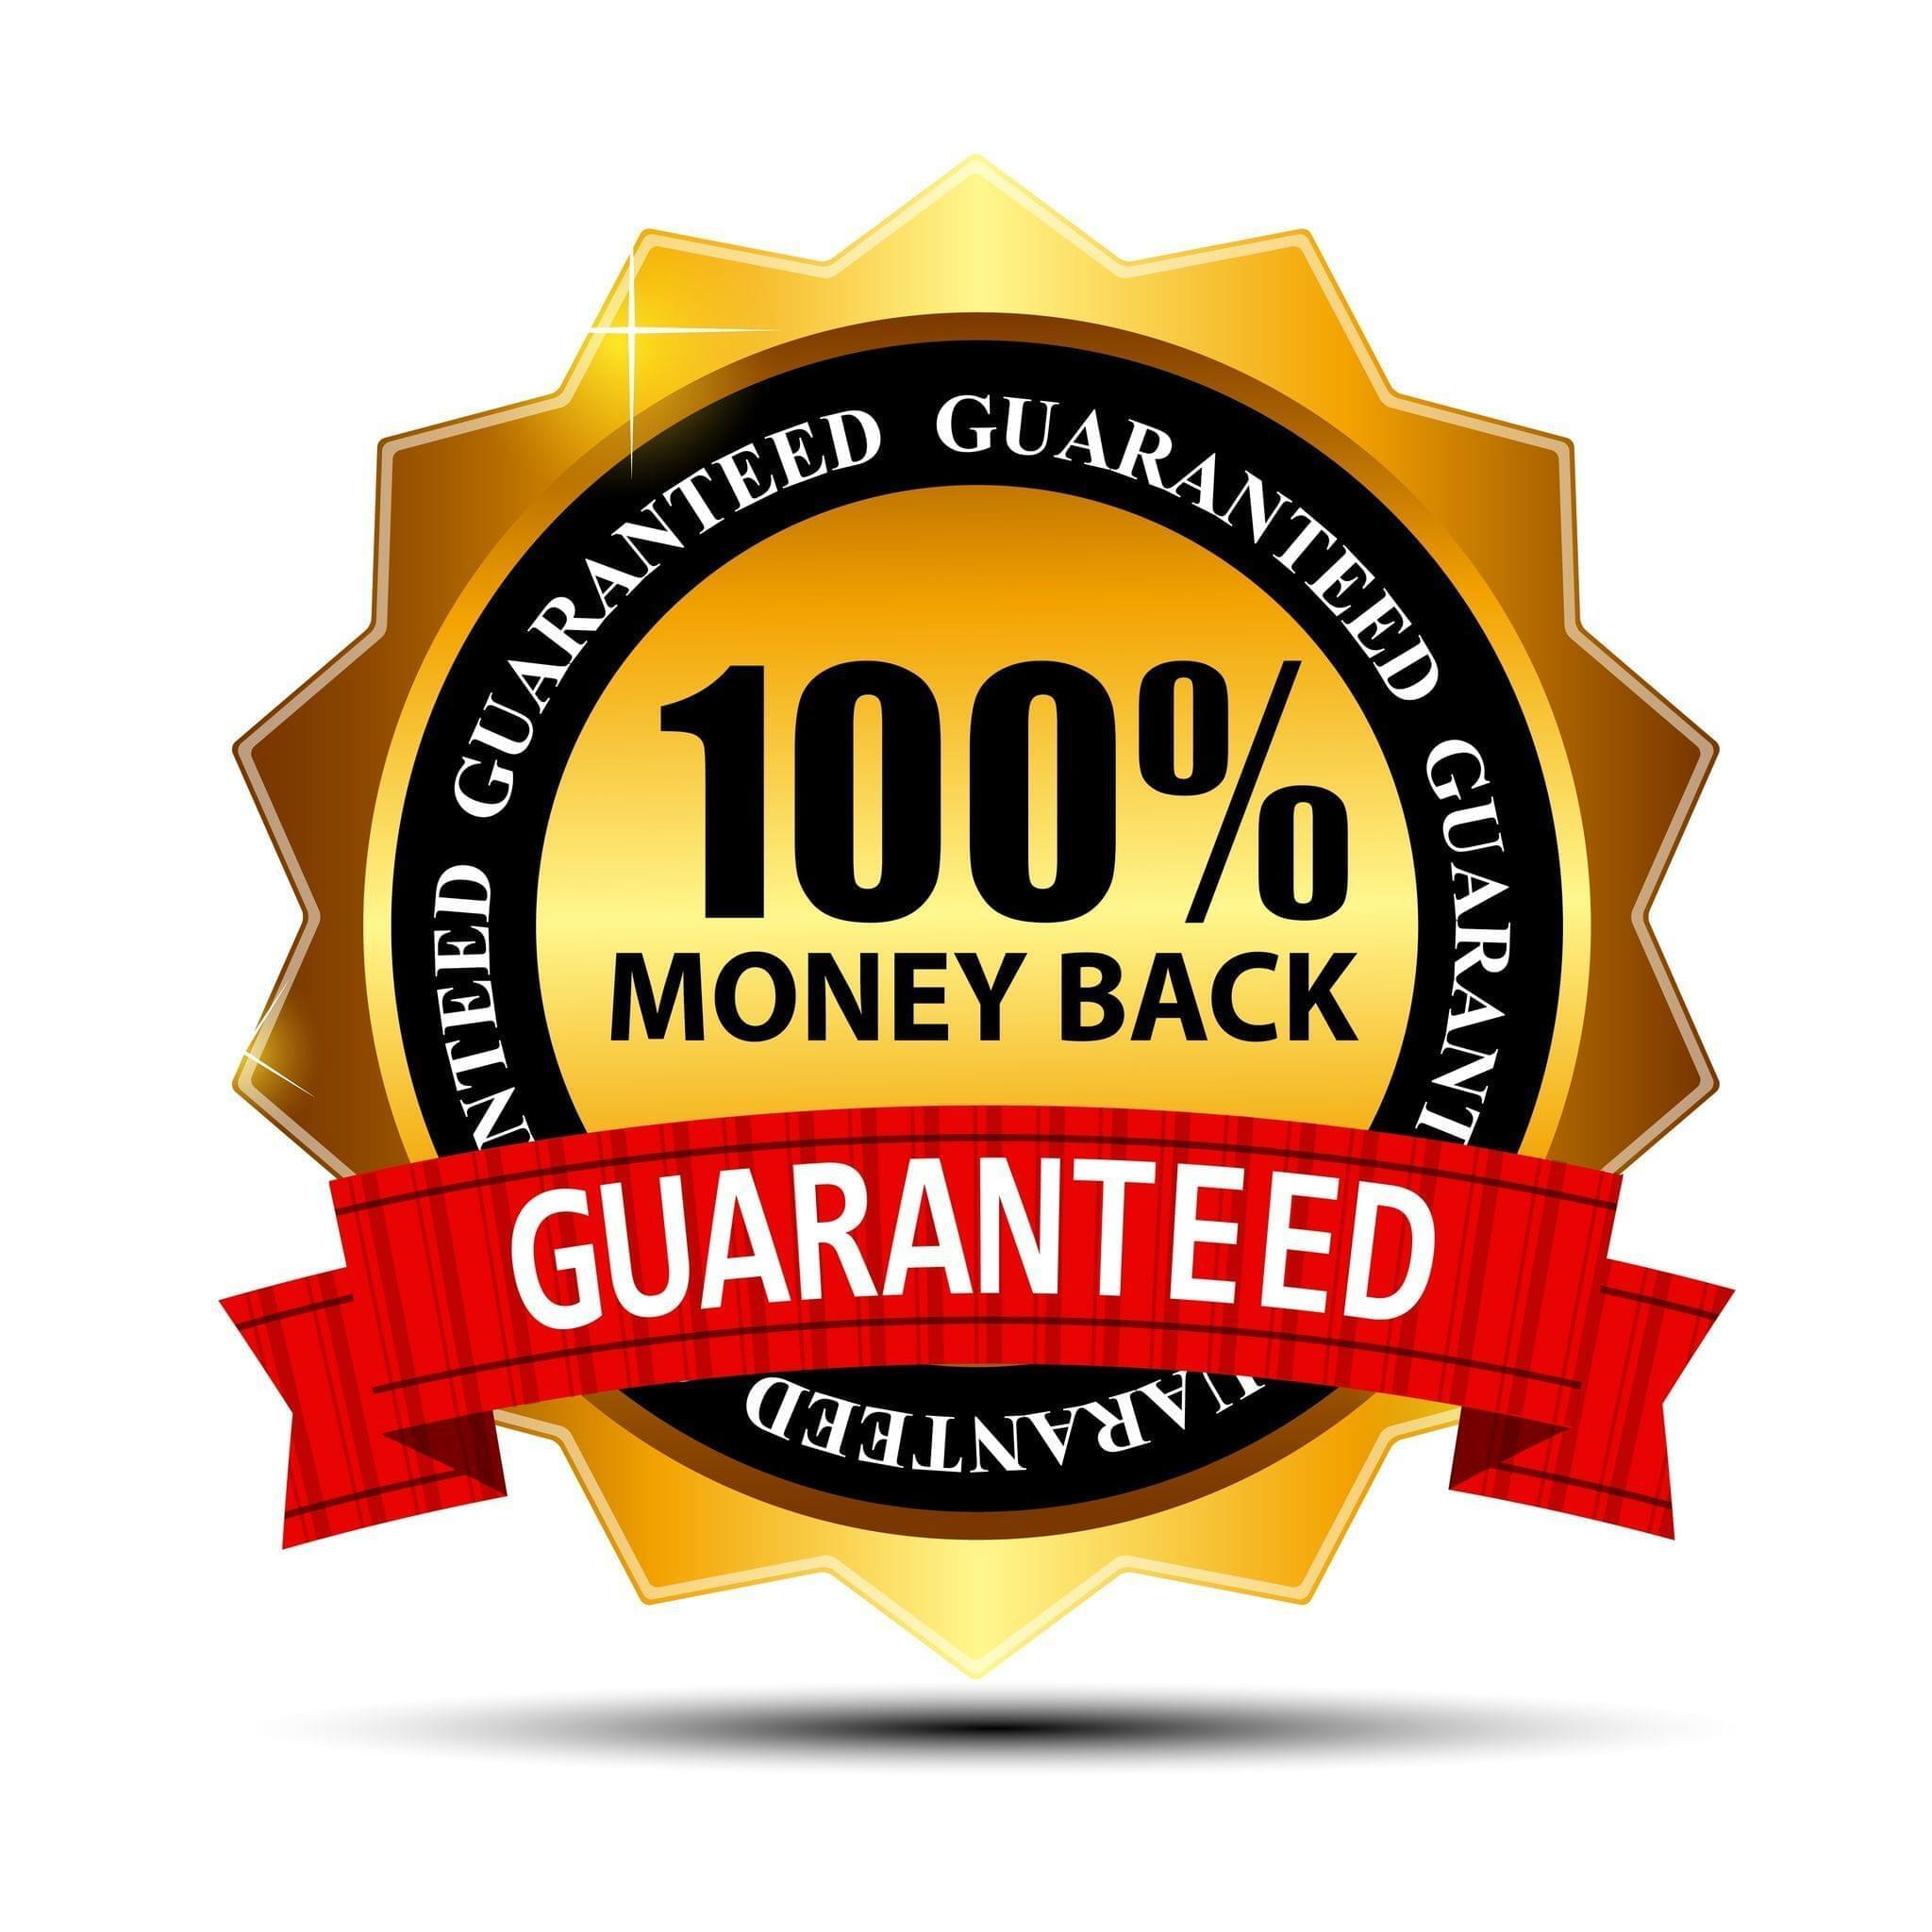 100% Money Back Guaranteed Seal